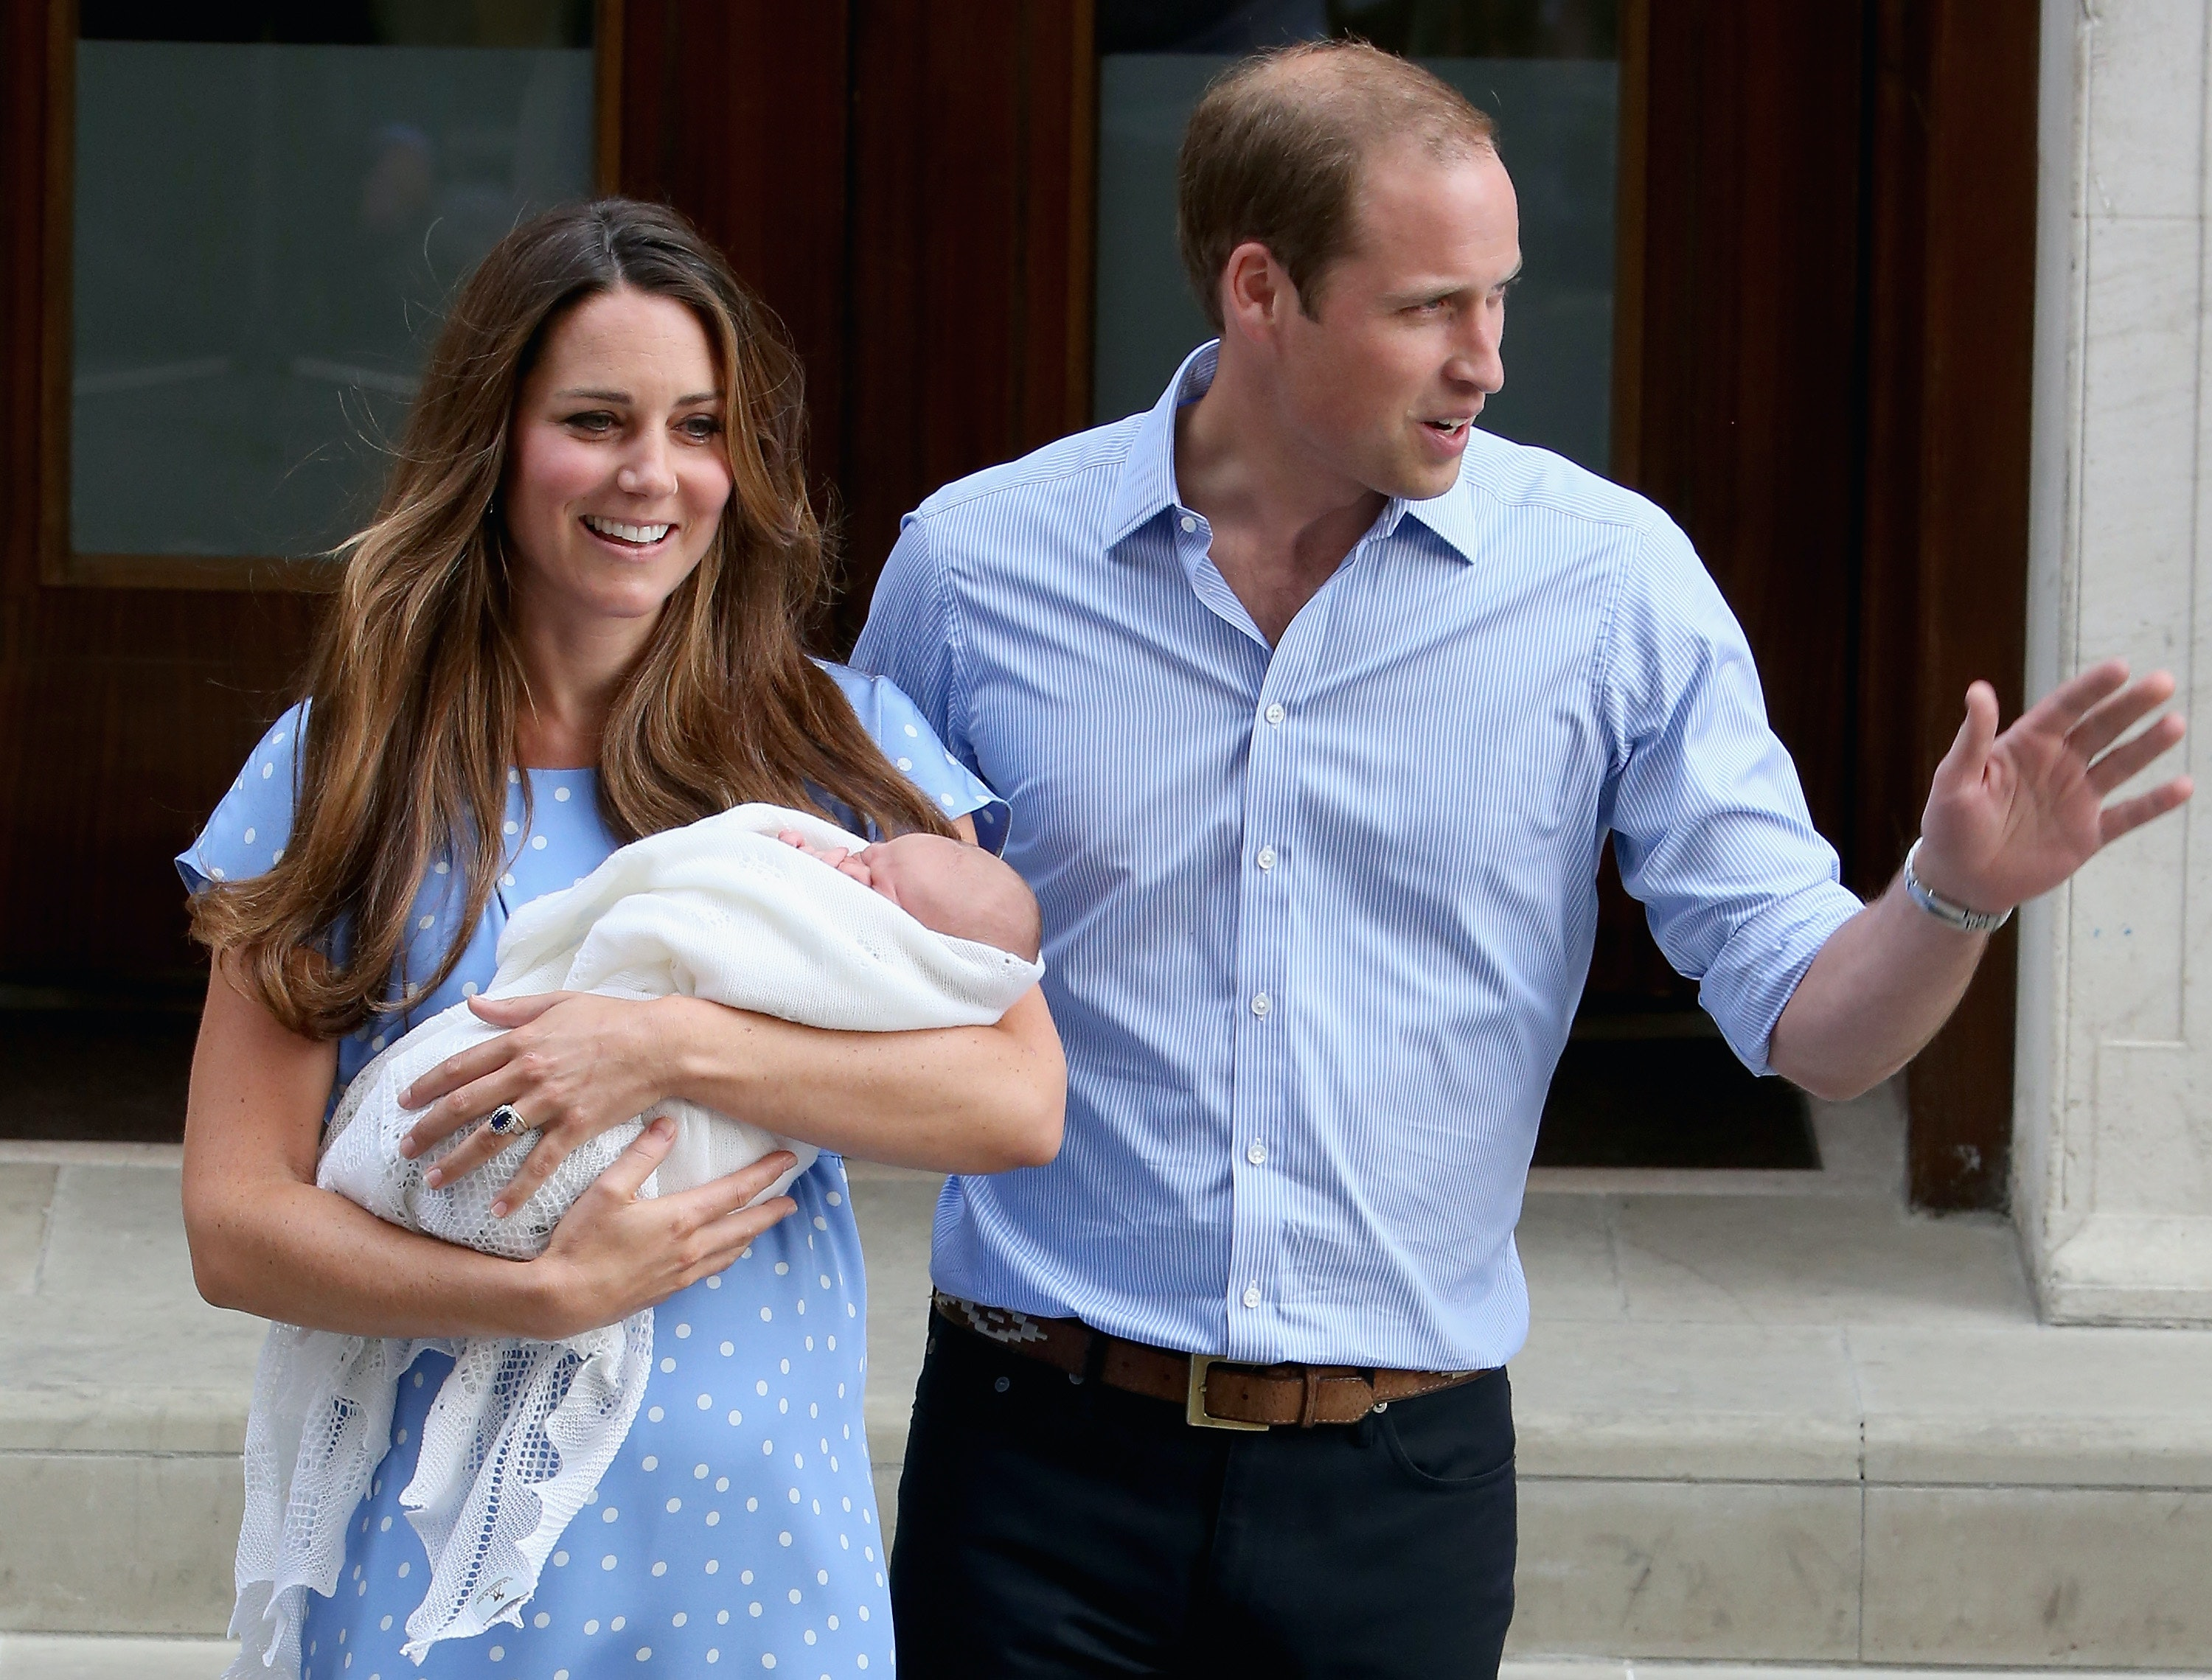 william and kate dating history